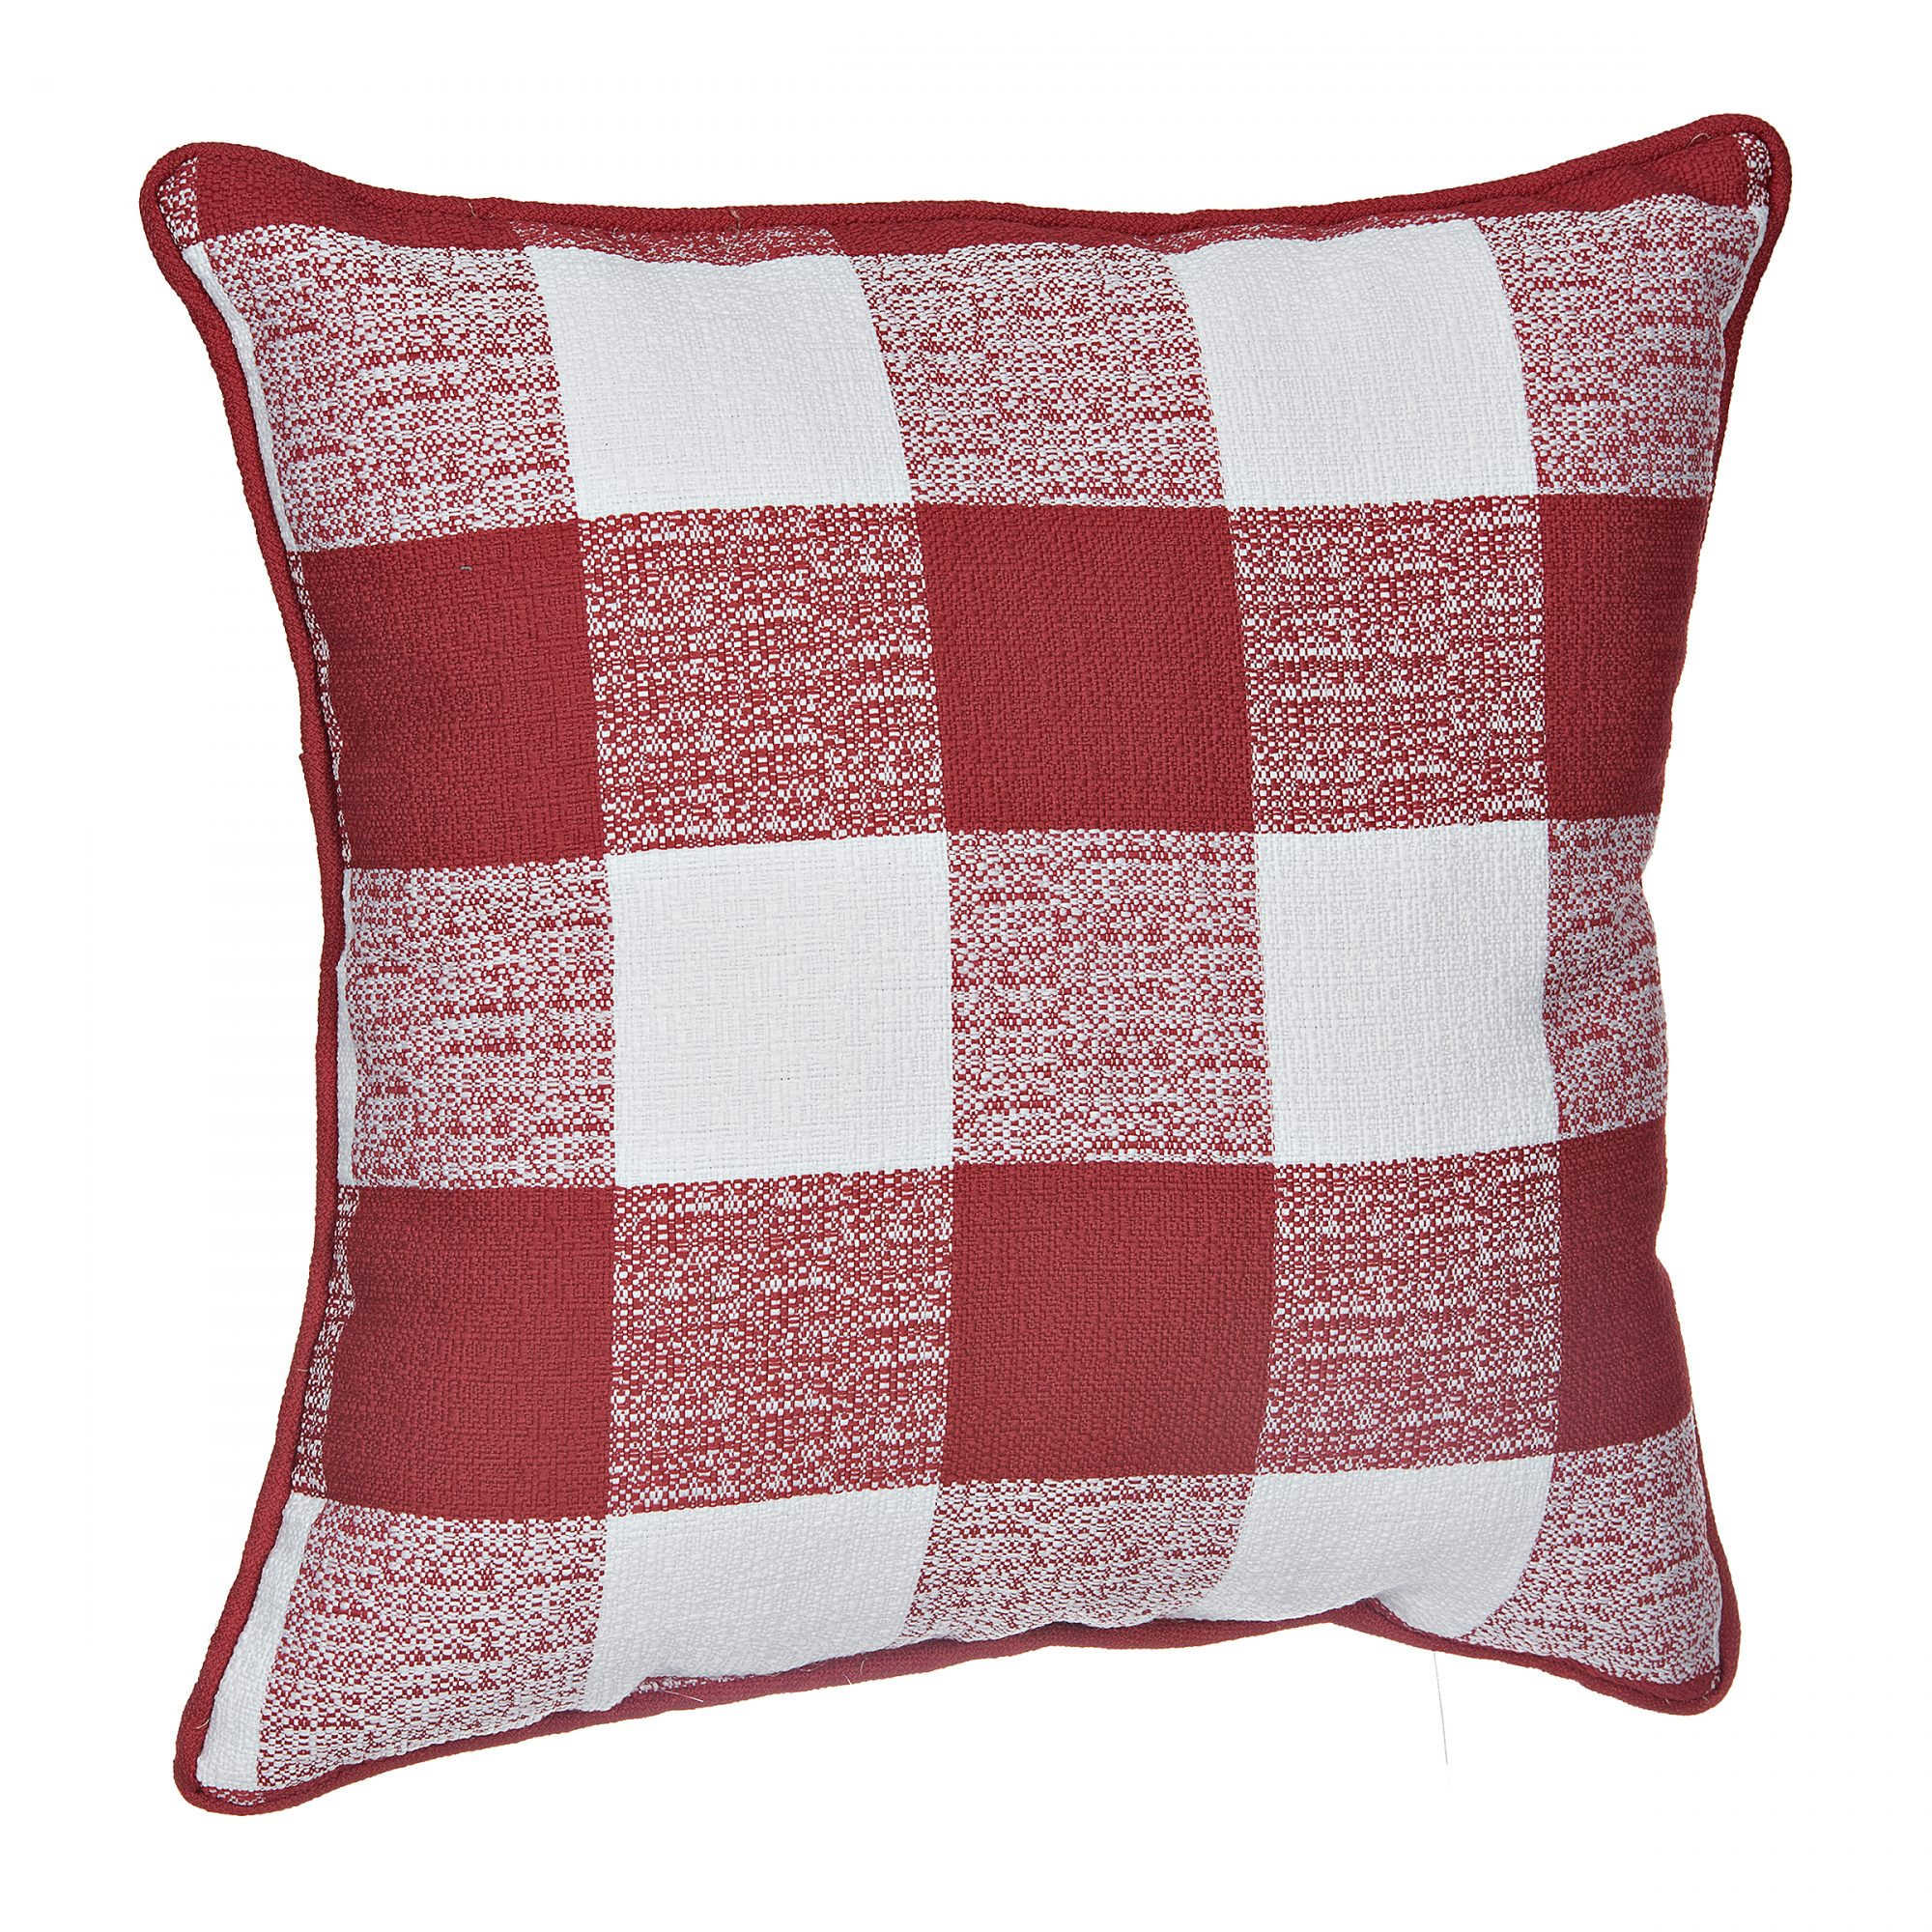 Red Buffalo Check Pillow, $19.99